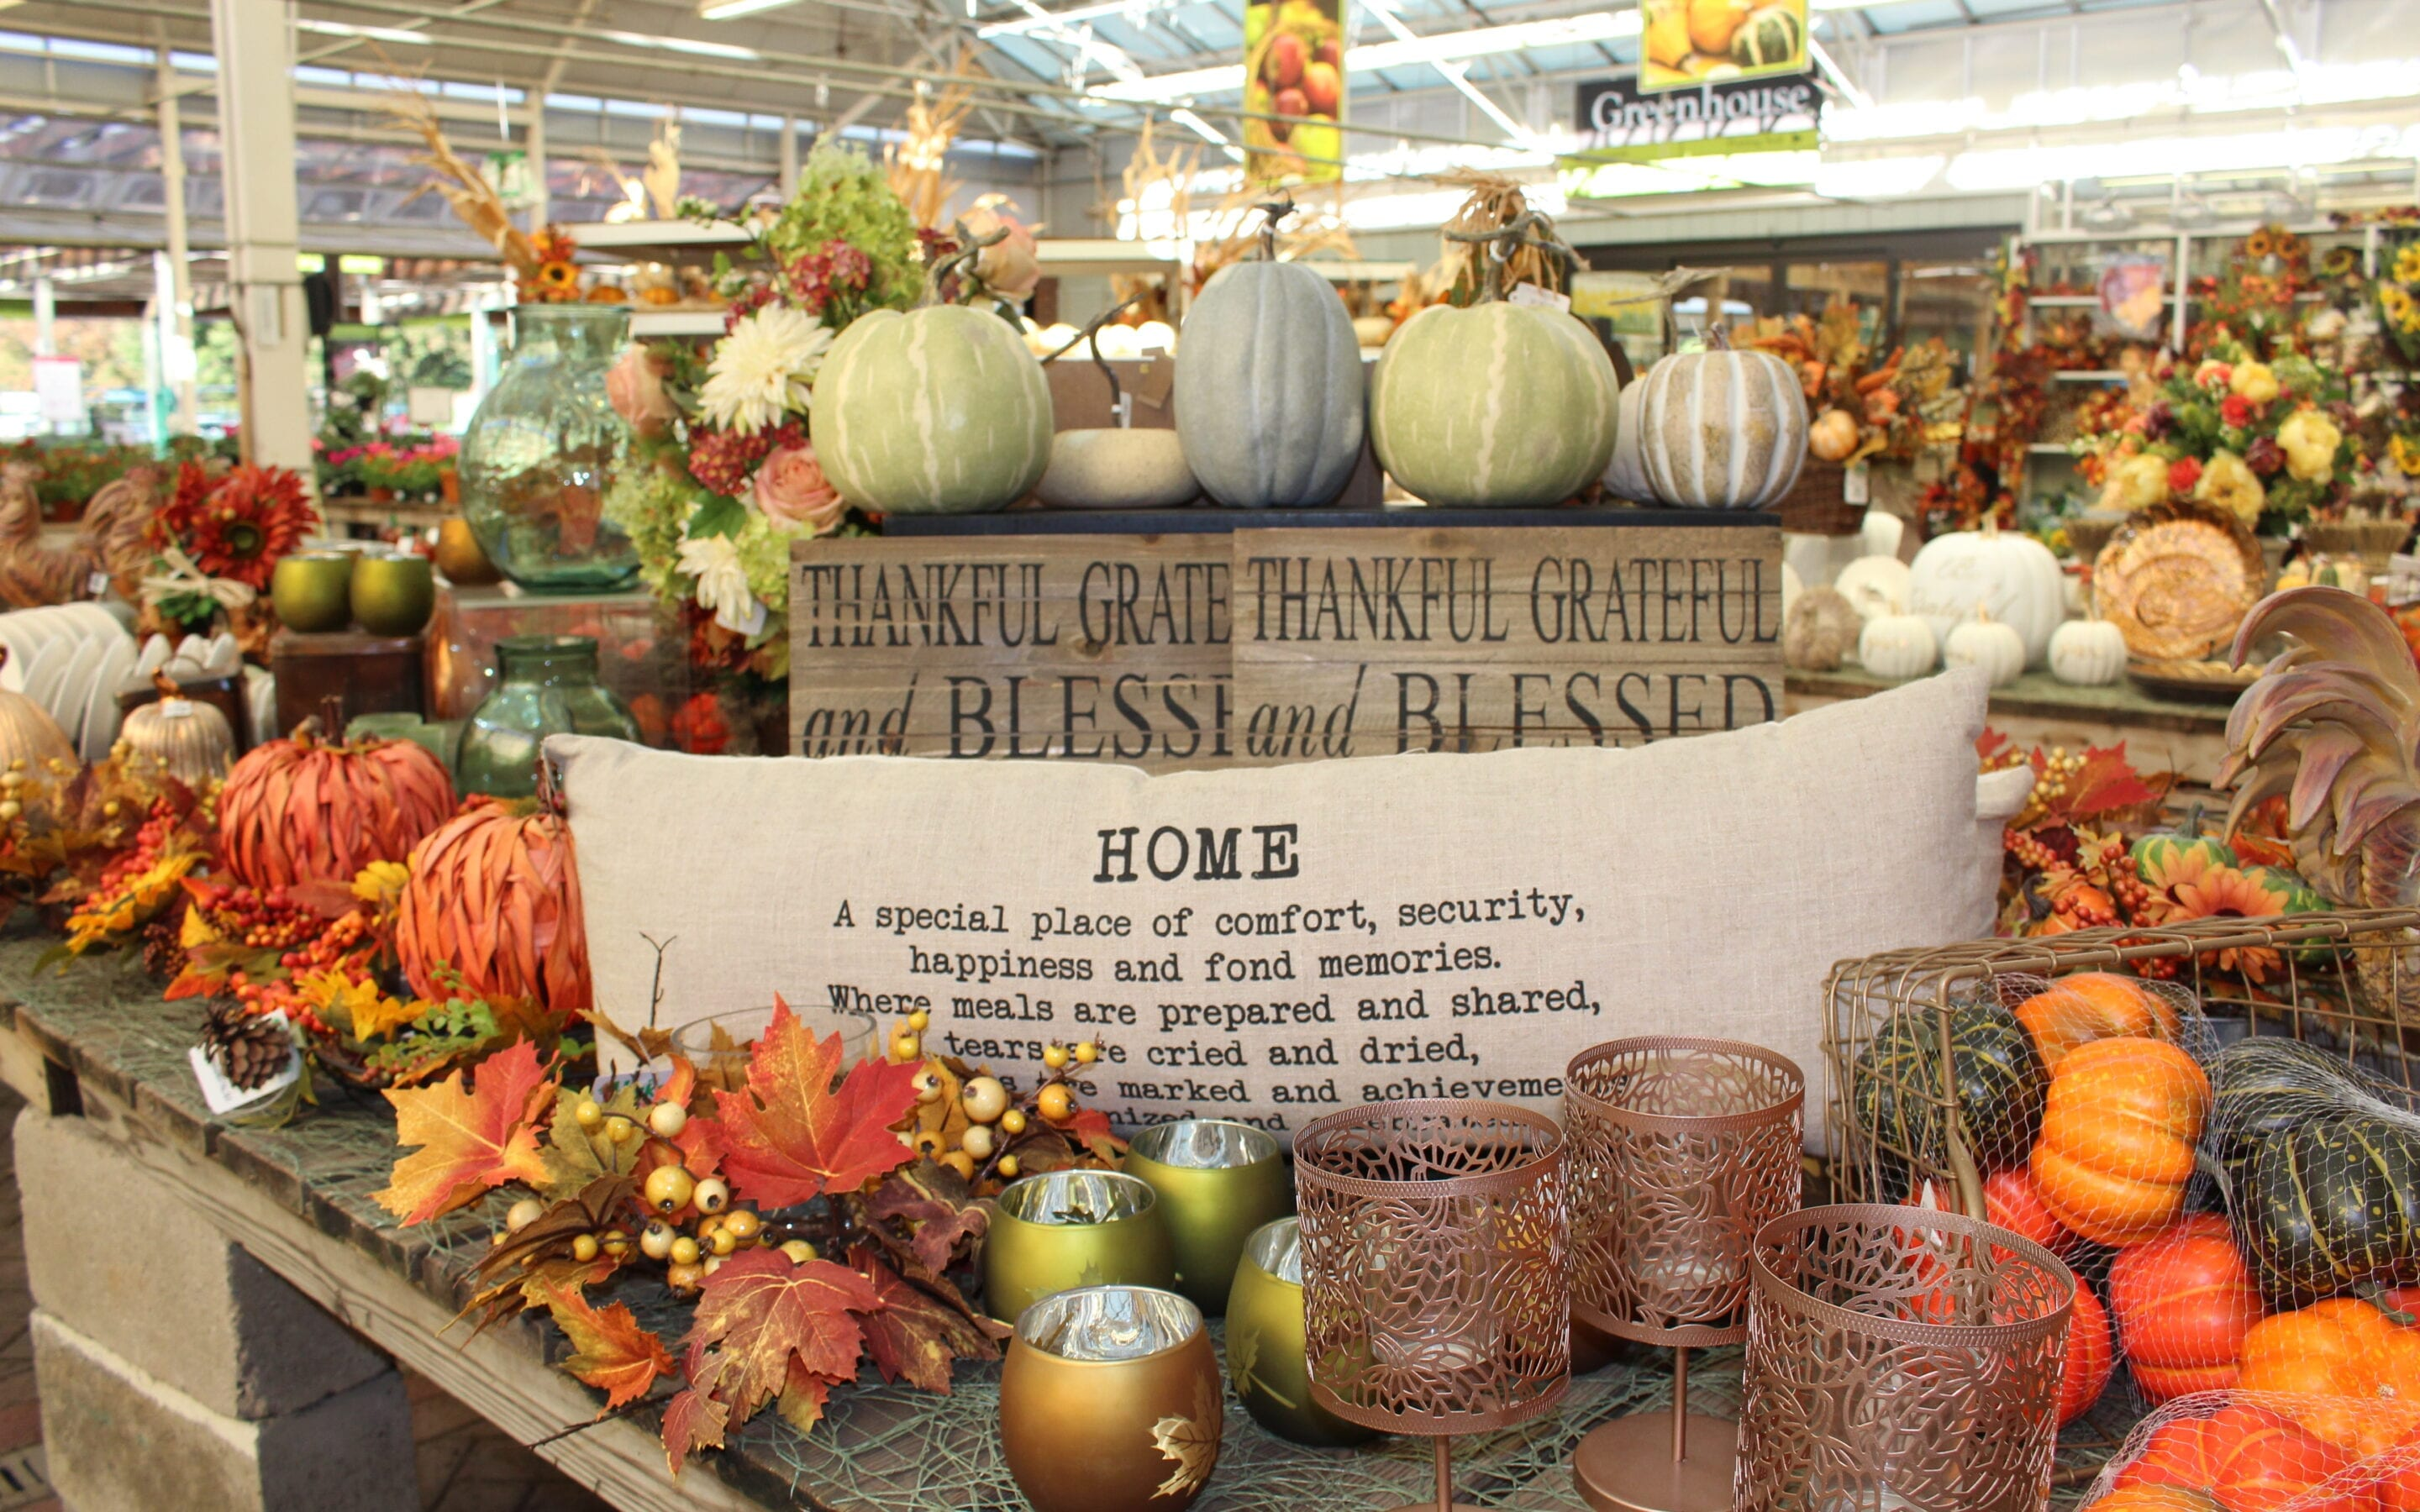 Thanksgiving Decorations to Enhance Your Home